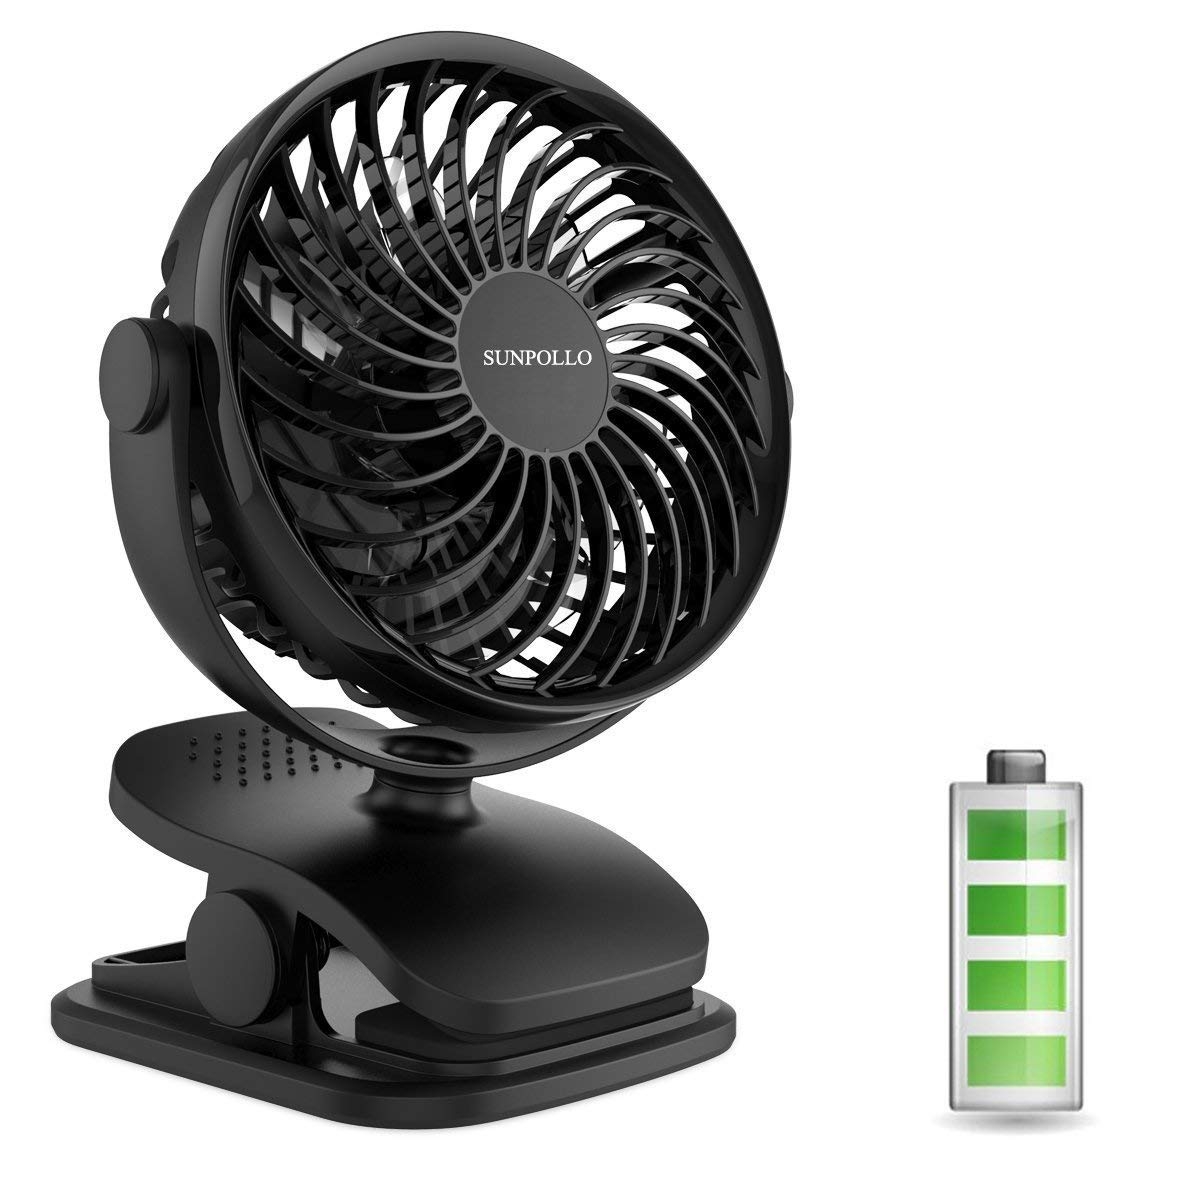 Clip on Fan, Rechargeable Battery Operated or USB Powered, Mini Portable Fan with 4 Speeds, Clip & Desk Fan 2 in 1, Personal Fan for Baby Stroller, Car Seat, Treadmill, Office, Outdoor Camping